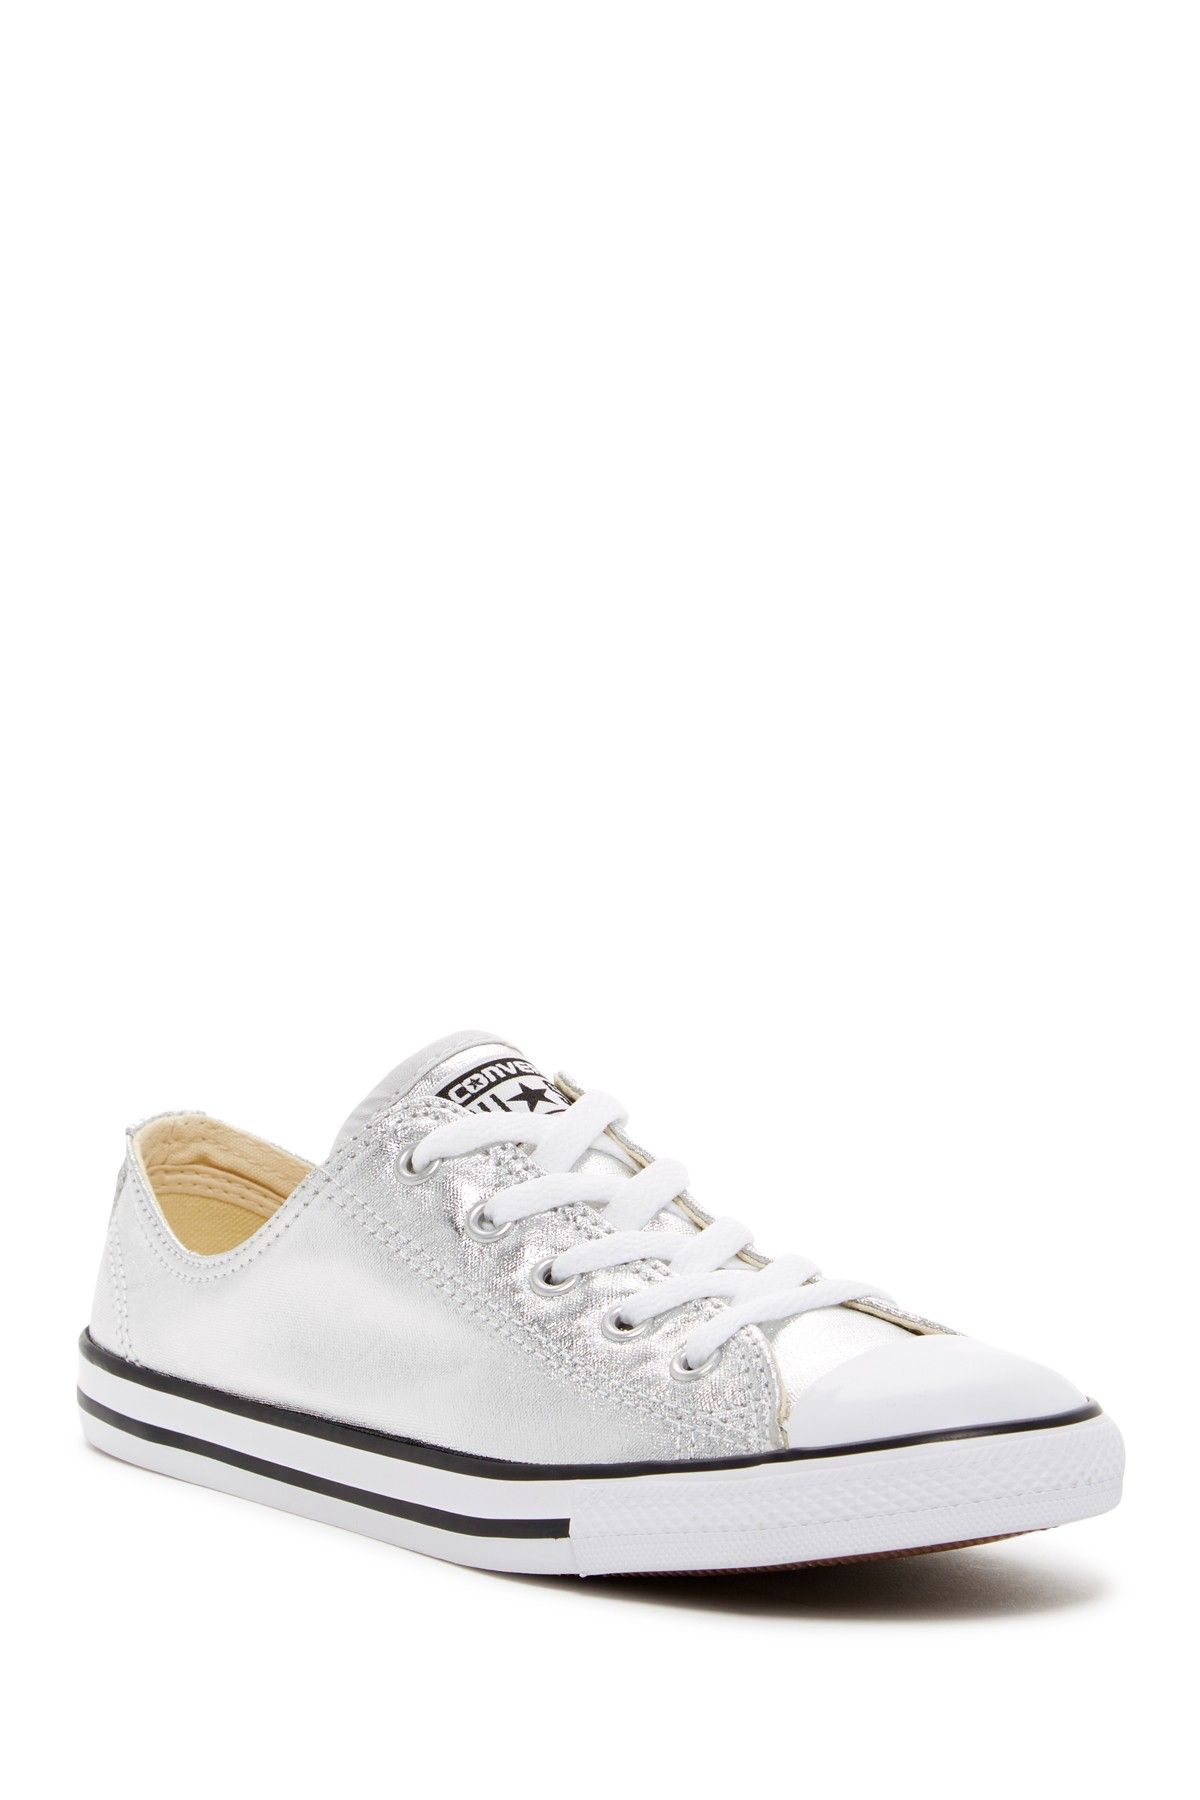 456e2391435e Converse Chuck TaylorR All StarR Dainty Ox Low Top Sneaker Women ...